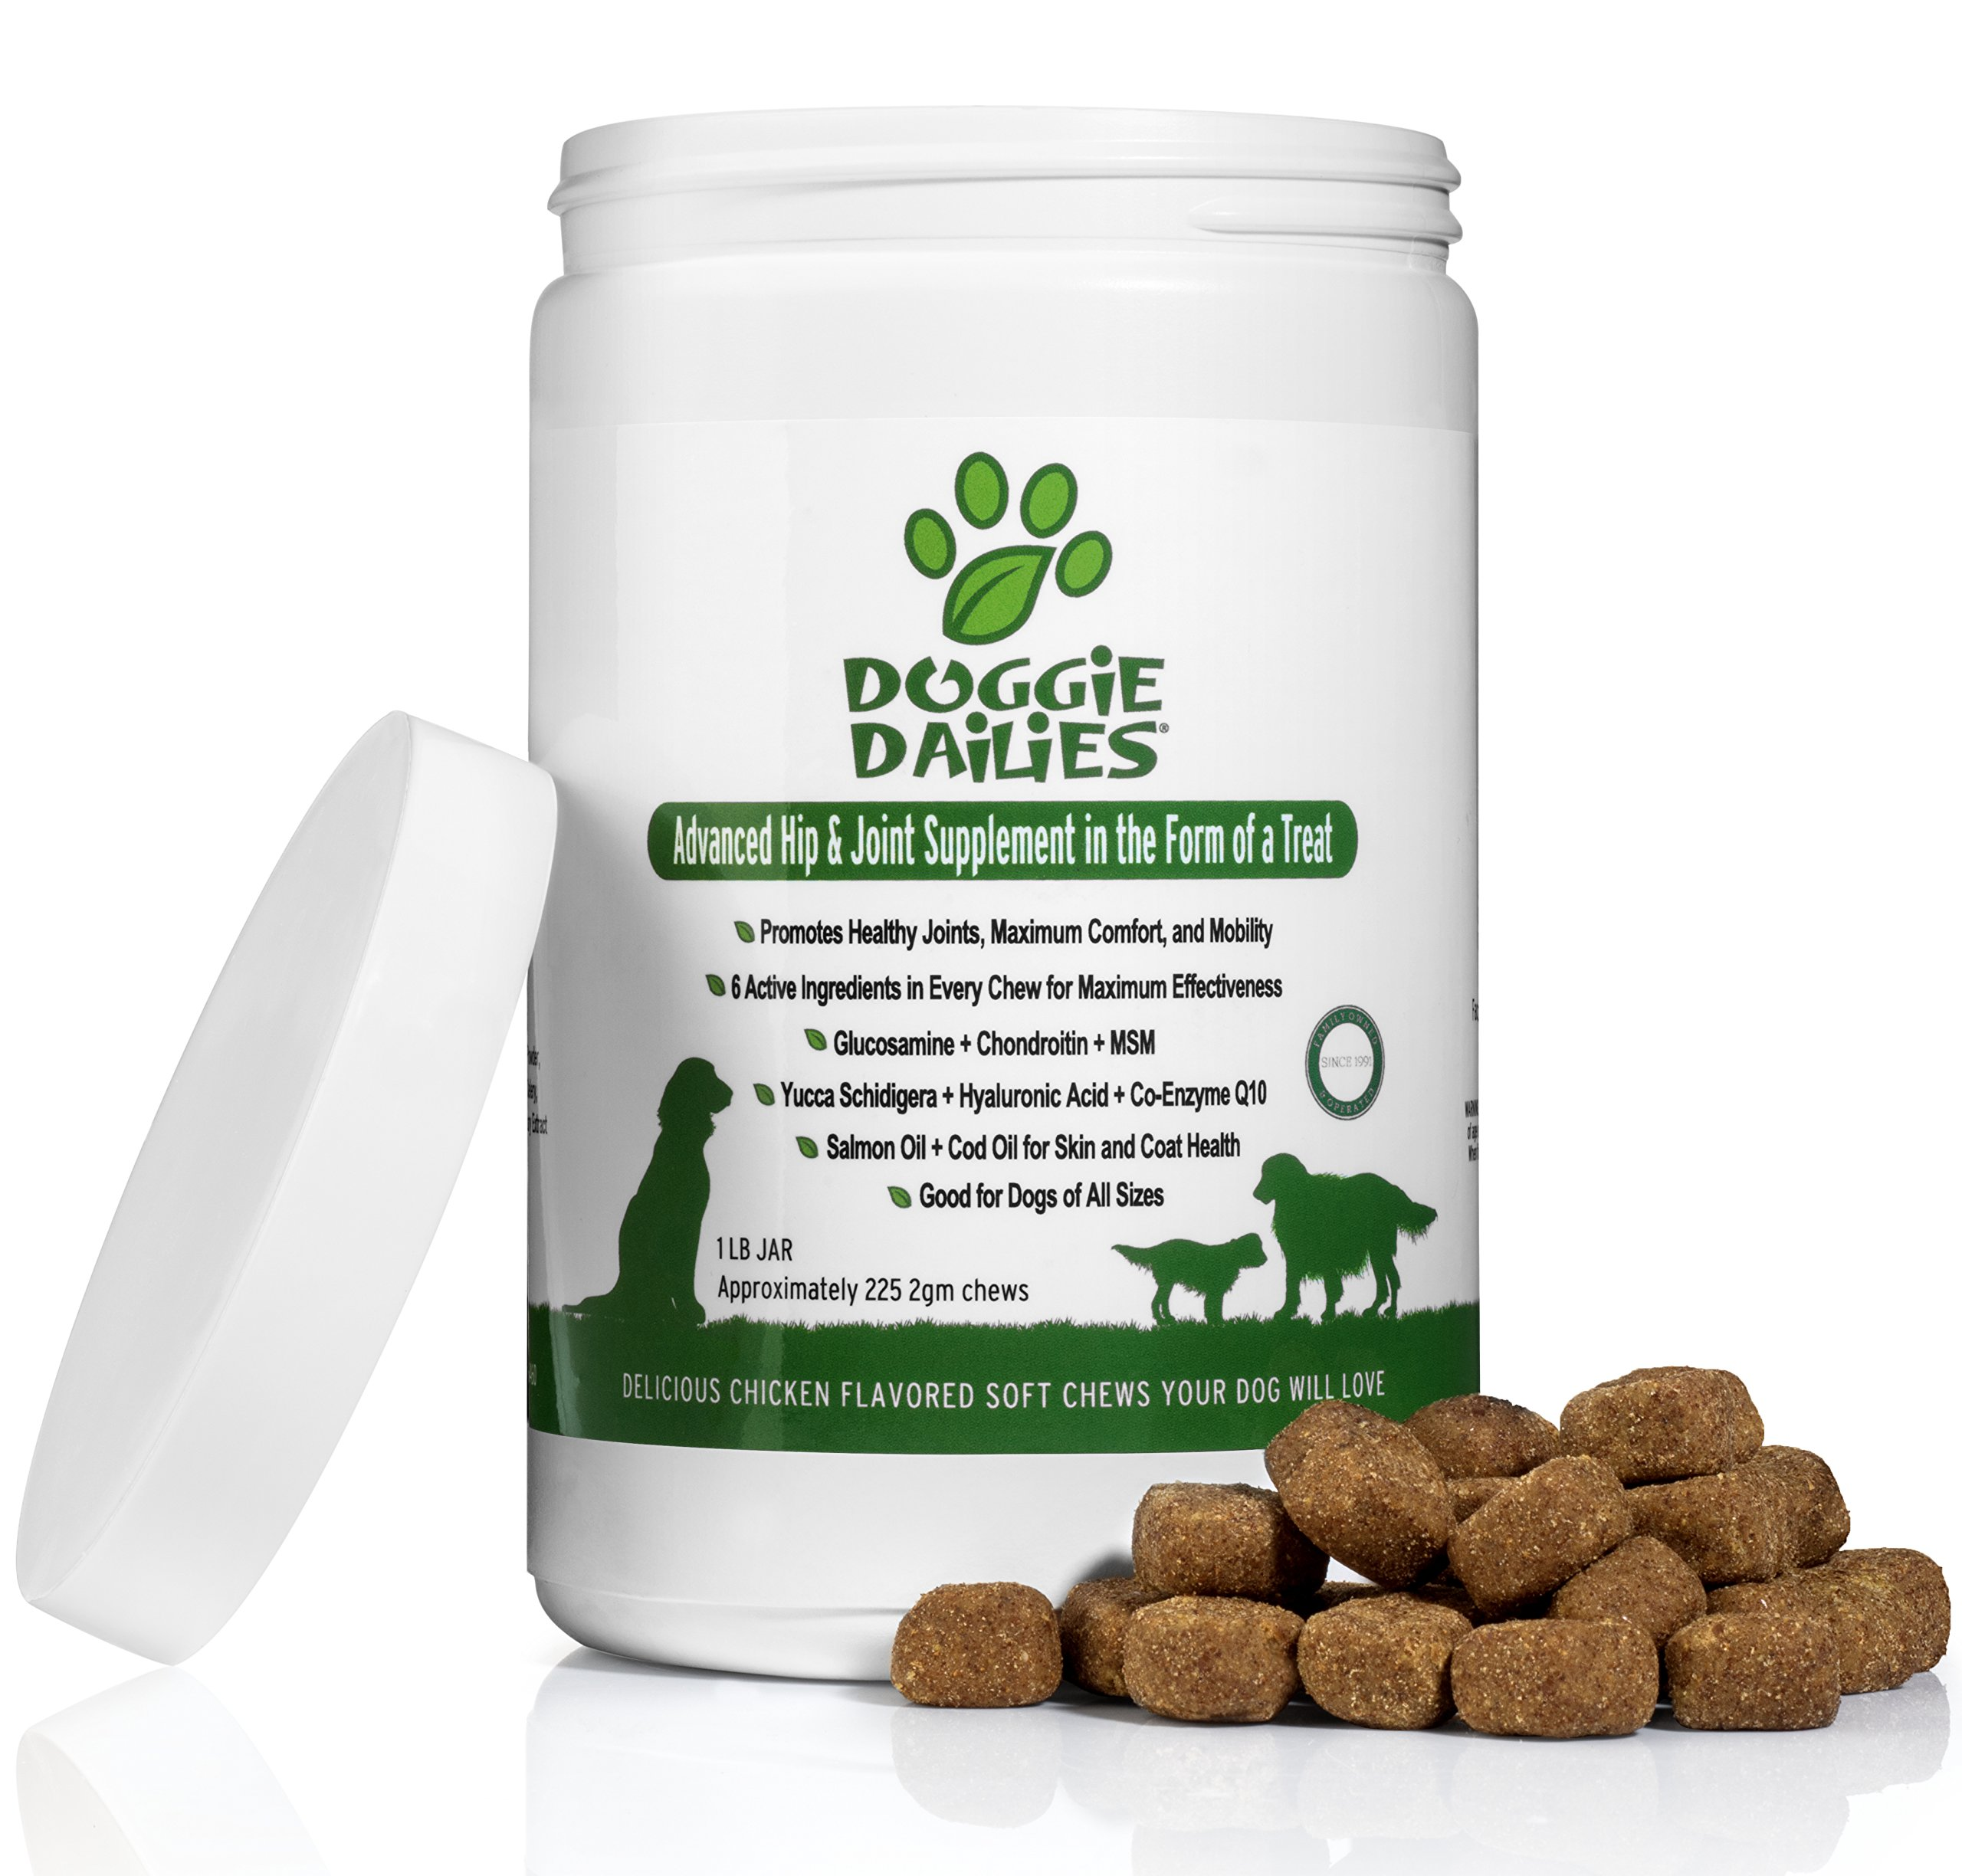 Doggie Dailies Glucosamine for Dogs: 225 Soft Chews, Advanced Hip and Joint Supplement for Dogs with Glucosamine, Chondroitin, MSM, Hyaluronic Acid & CoQ10, Premium Joint Relief for Dogs, Made in USA